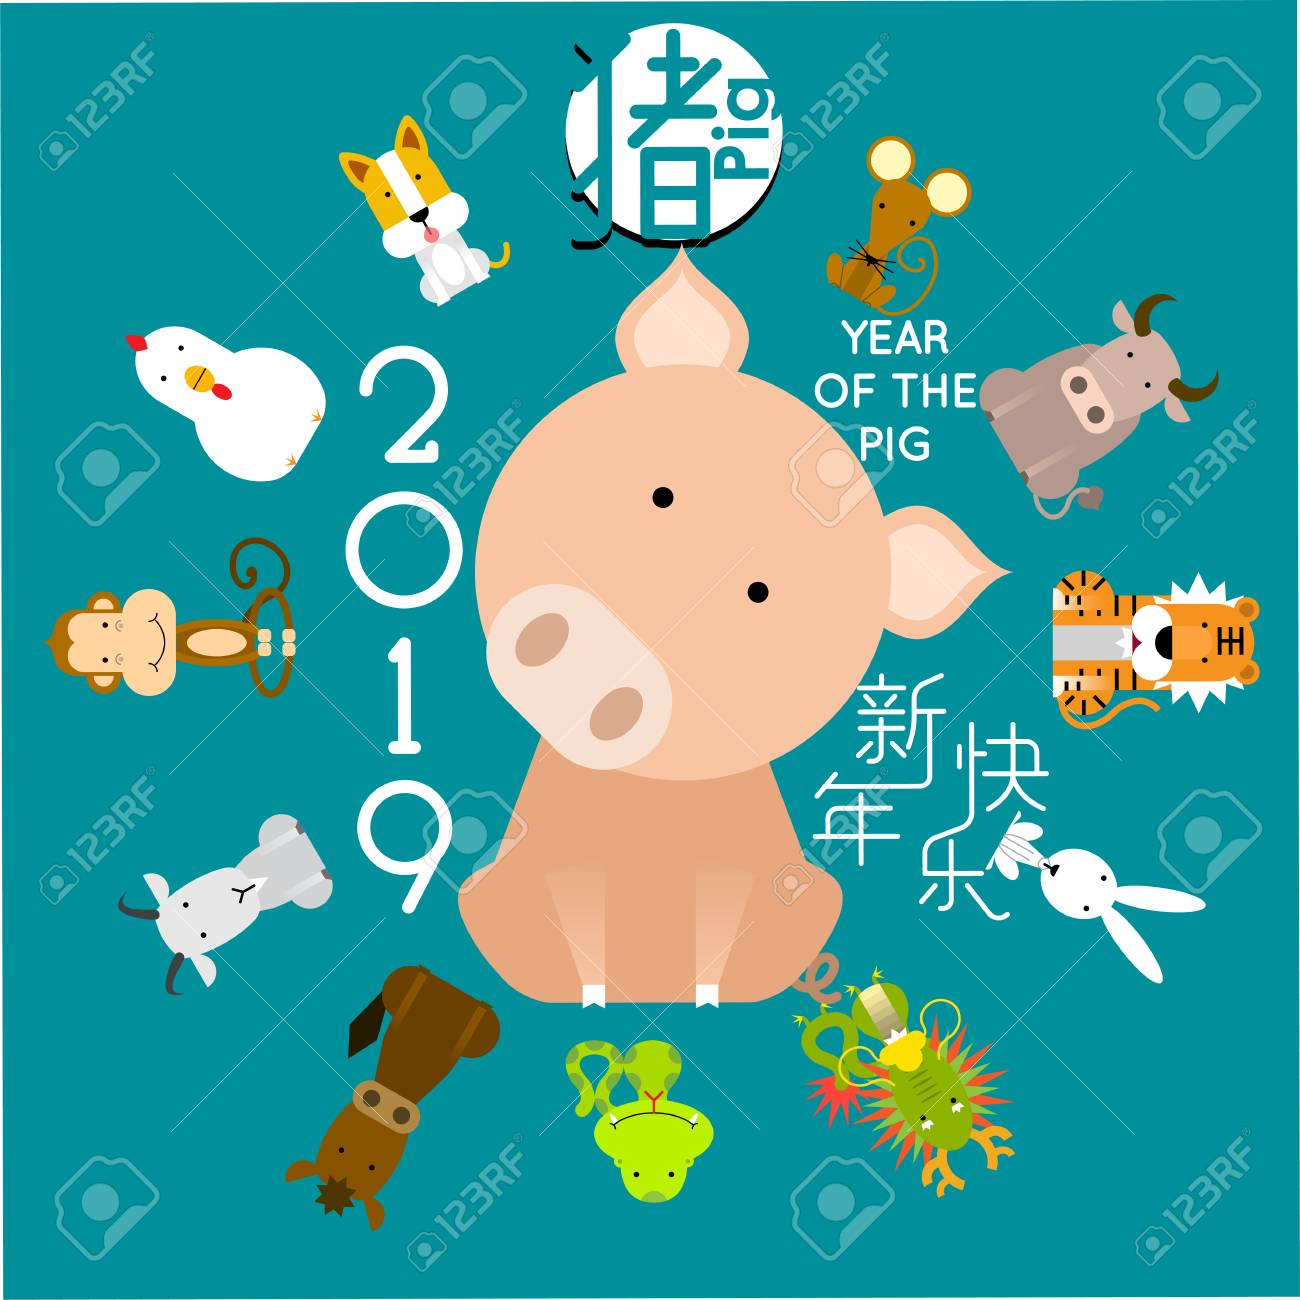 Happy Chinese New Year 2019 Year Of The Pig With 12 Chinese Royalty Free Cliparts Vectors And Stock Illustration Image 99117158